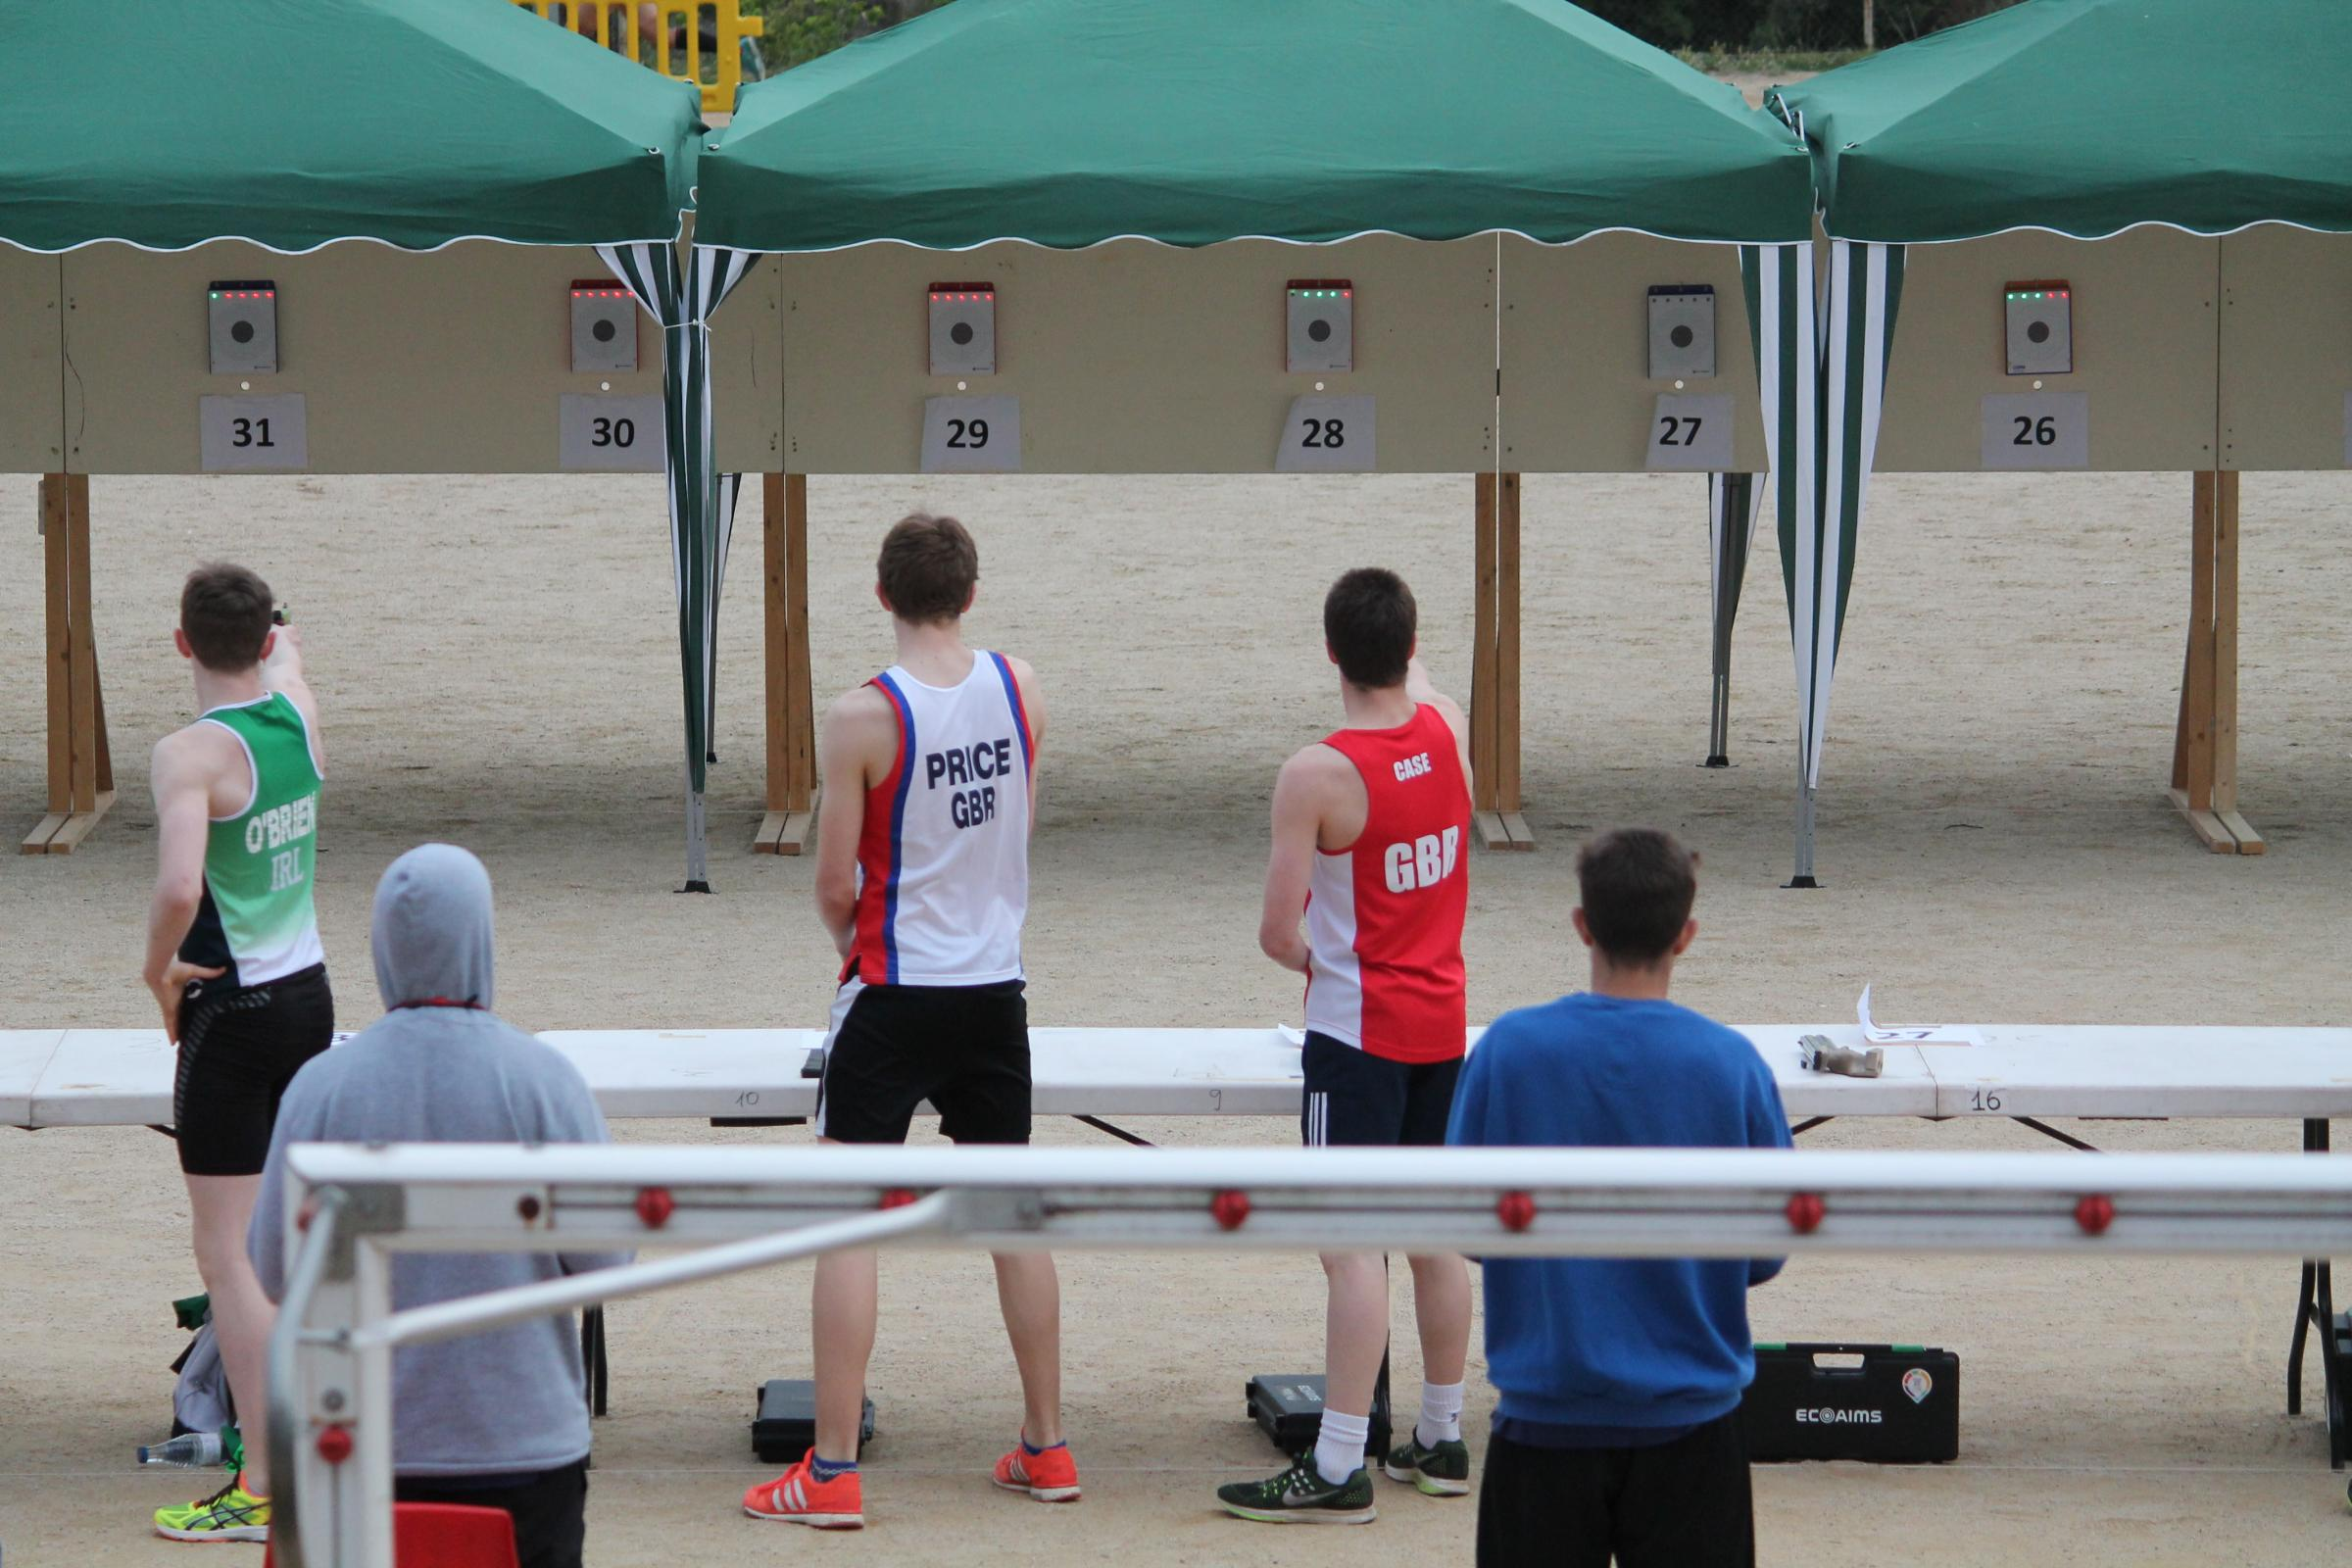 Yorkshire Pentathlon Club's Toby Price came second in the under-19s national ranking competition after being penalised in the last event